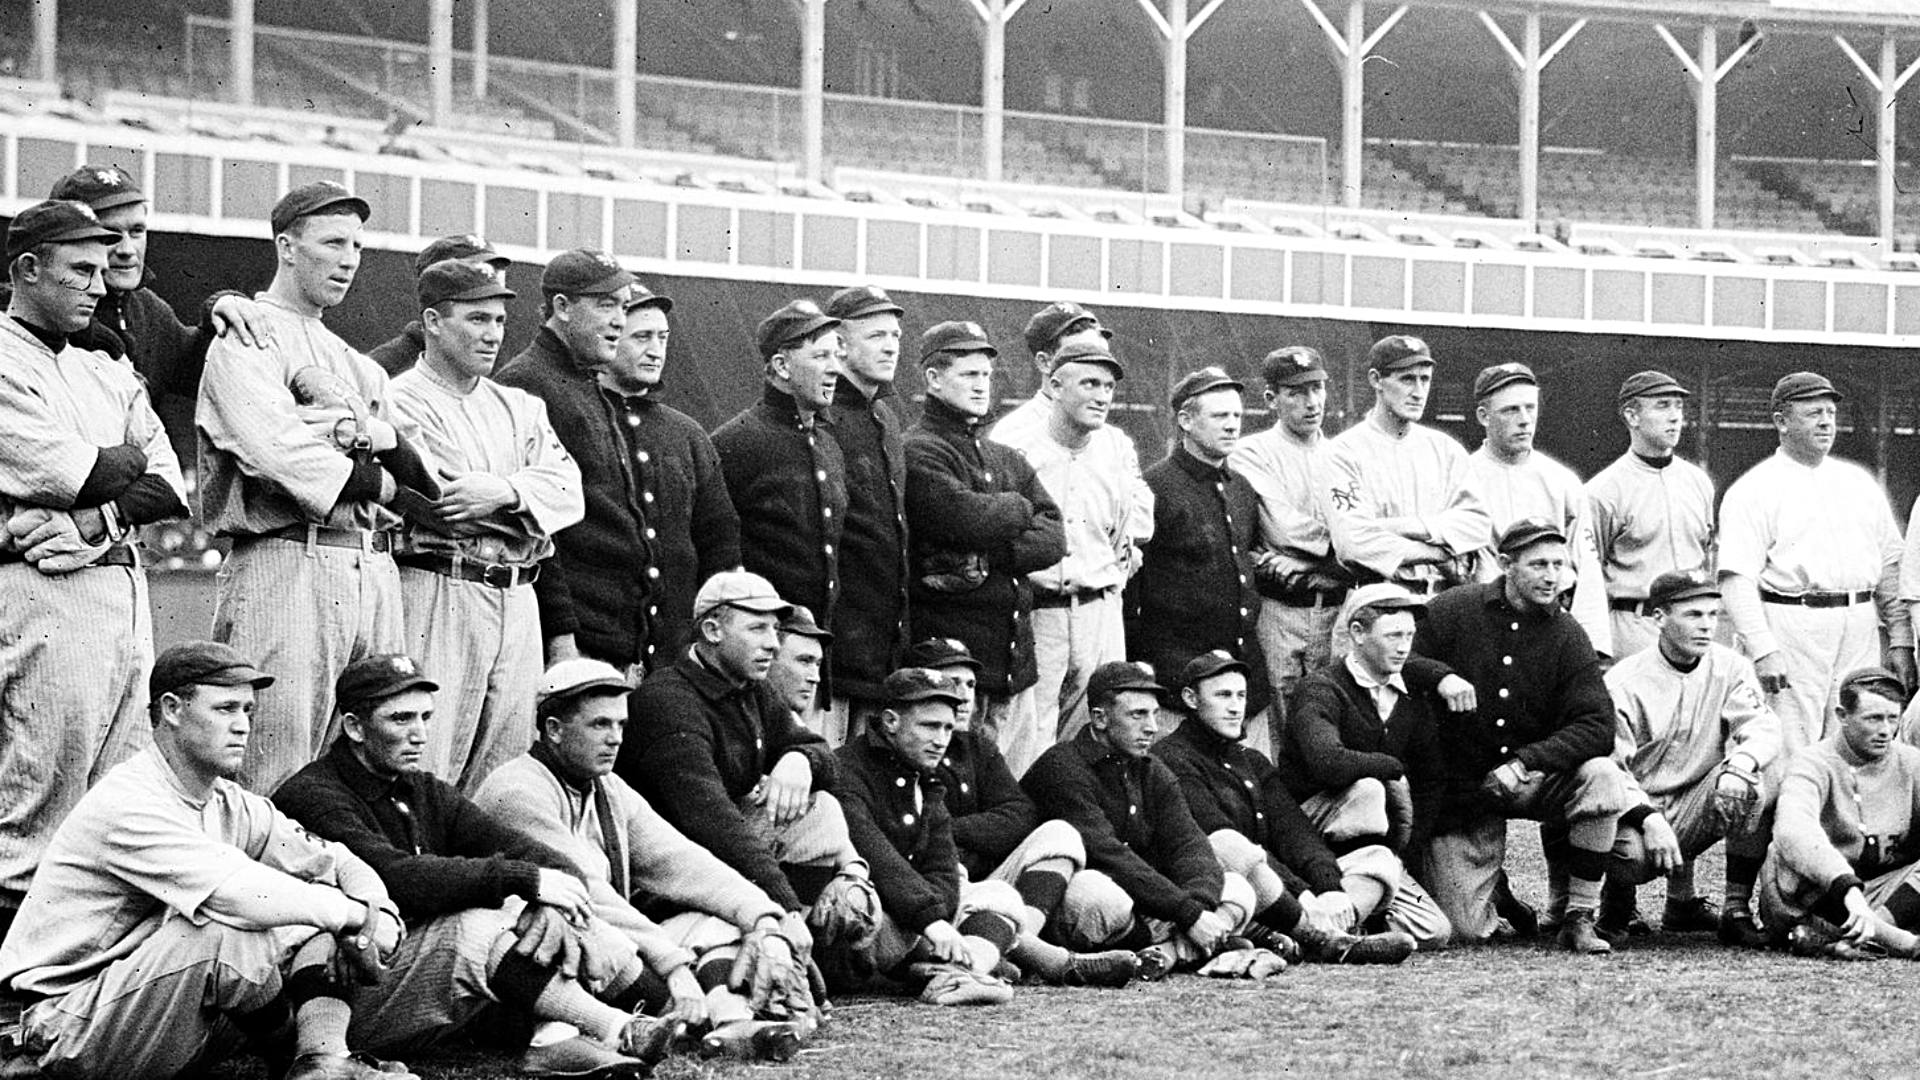 New-York-Giants-1911-public-domain.jpg